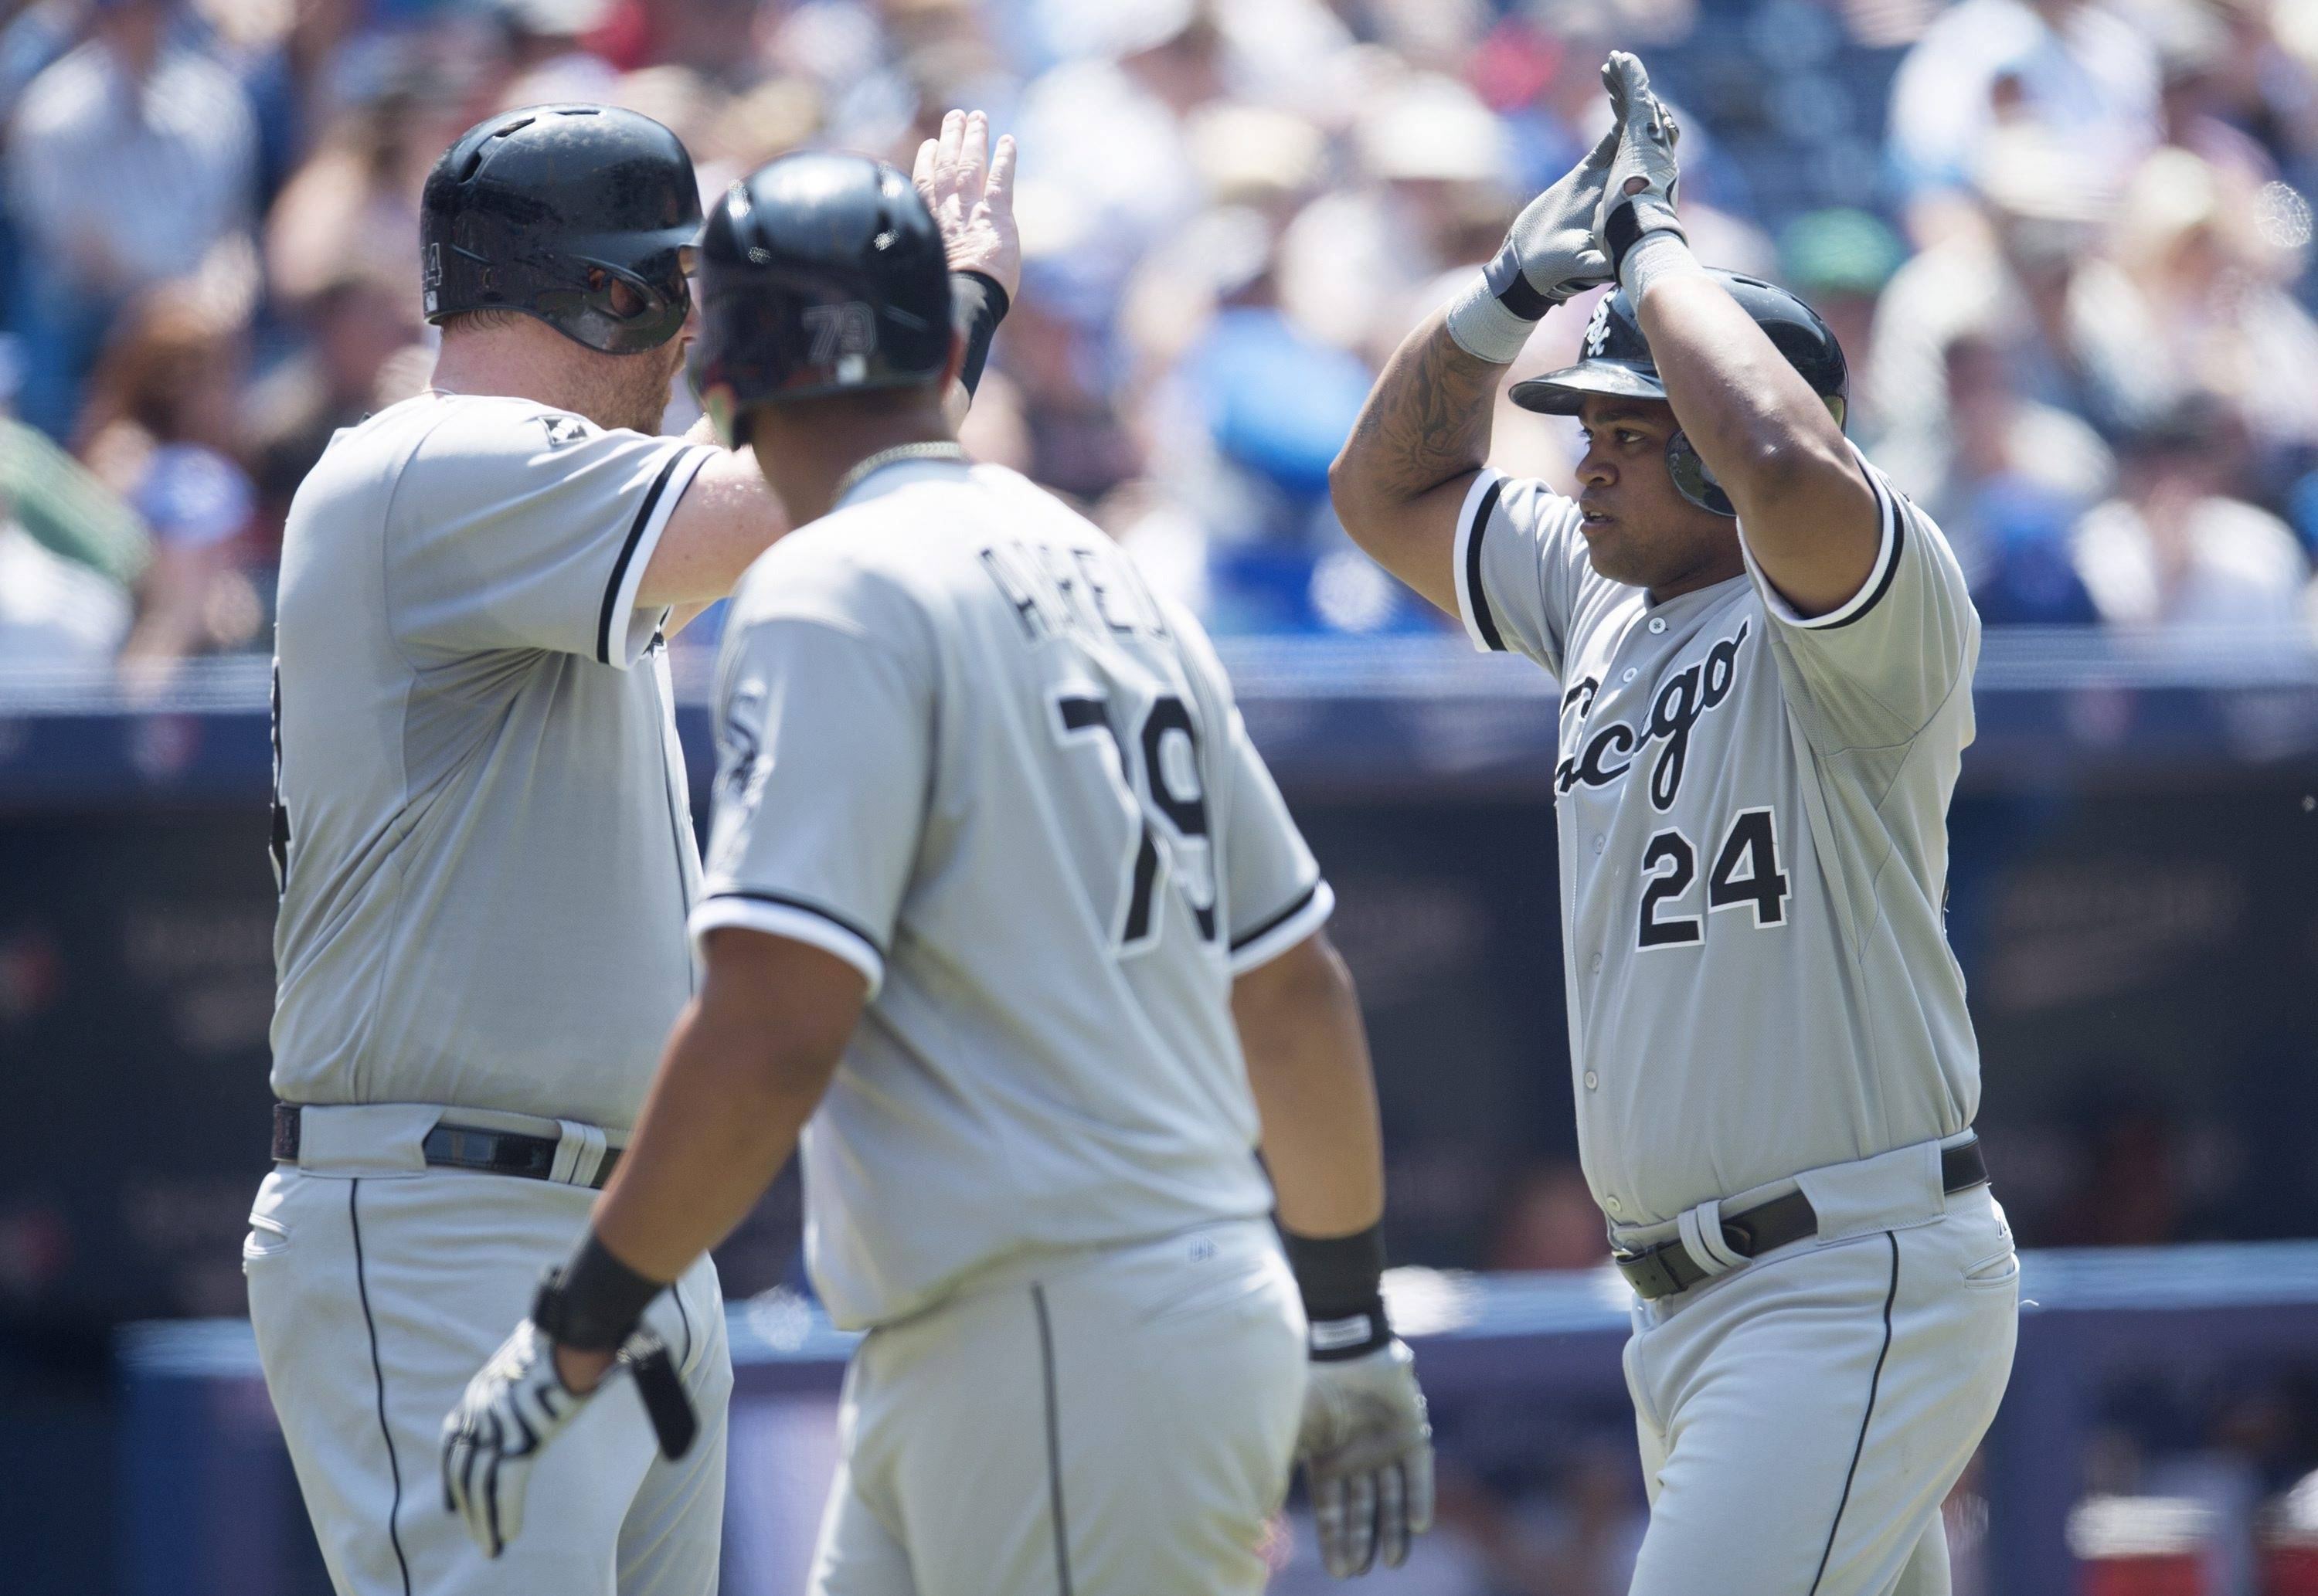 The White Sox's Dayan Viciedo, right, celebrates his three-run home run with teammates Adam Dunn, left, and Jose Abreu during Saturday's game in Toronto. The White Sox beat the Blue Jays 4-3.